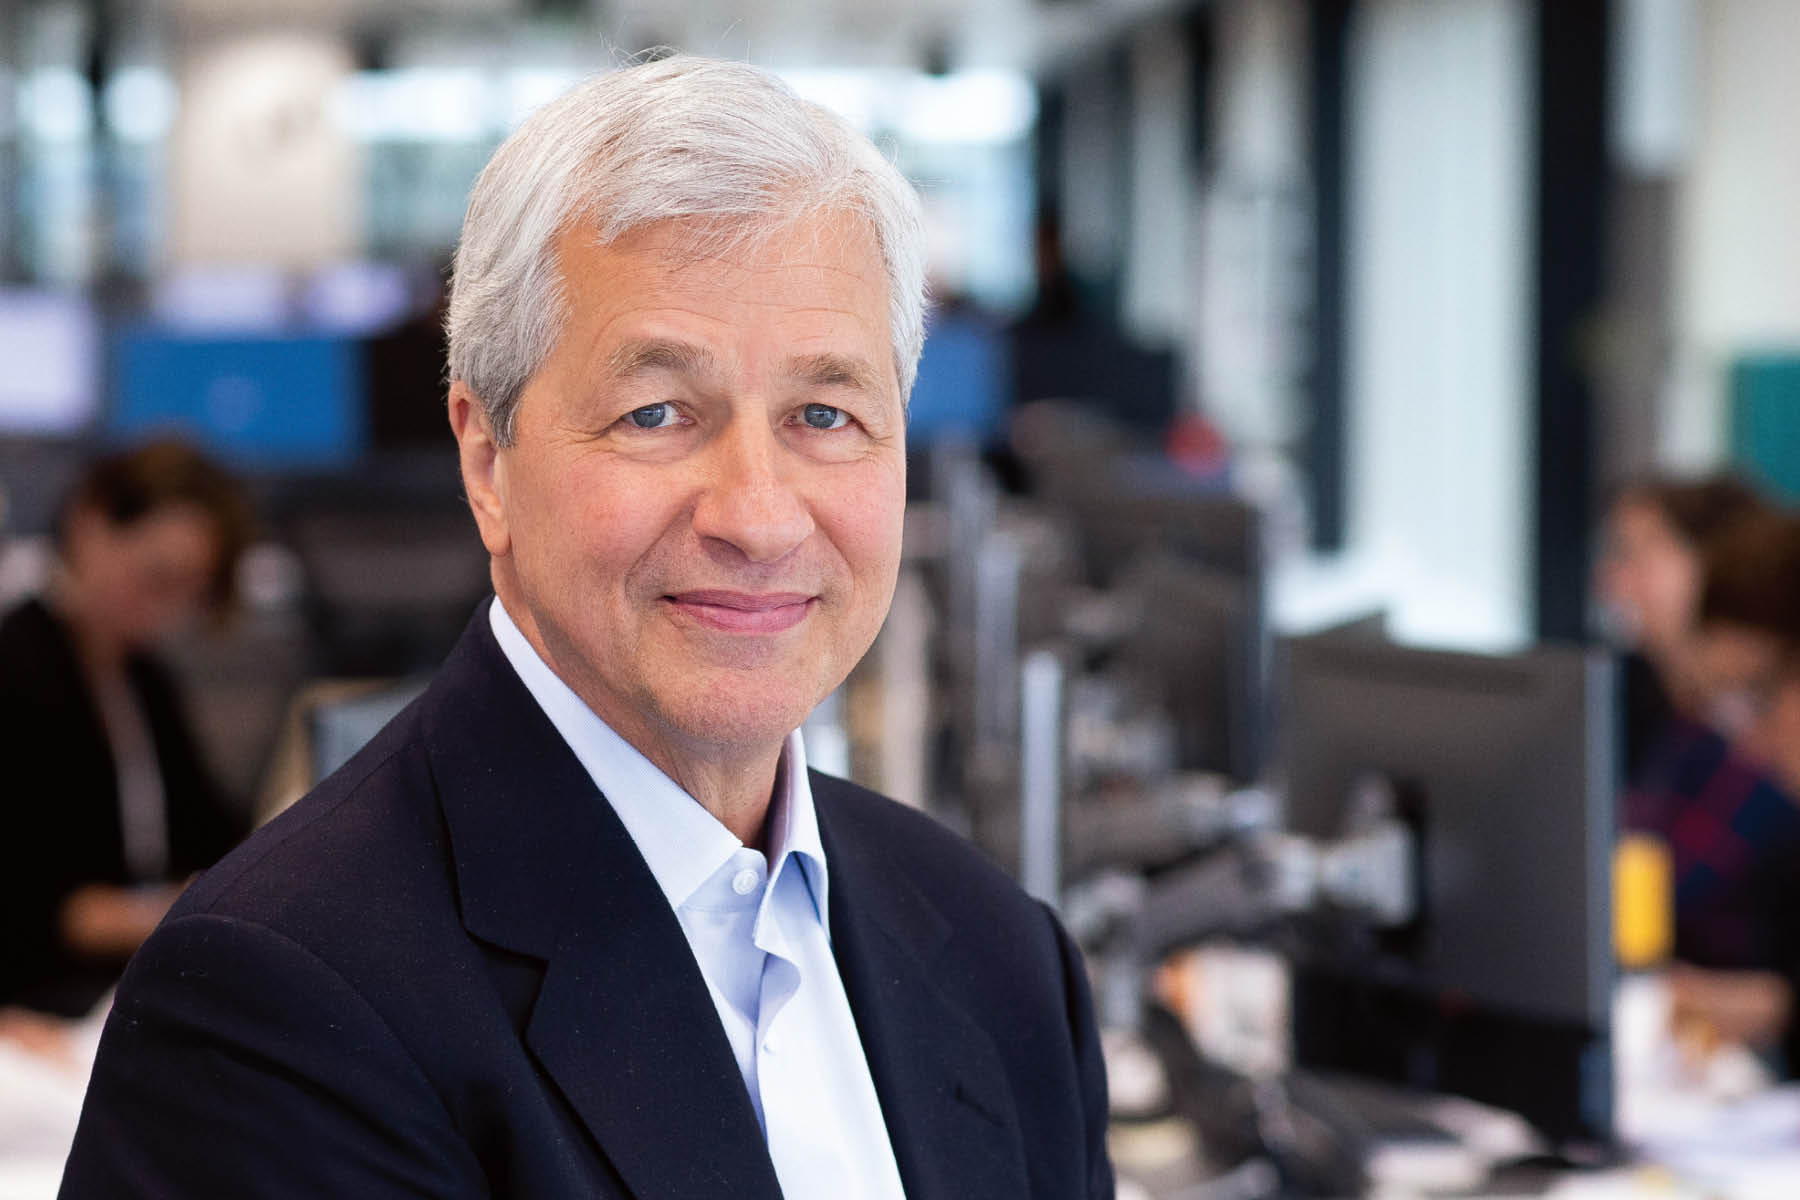 Photo of Jamie Dimon, Chief Executive Officer and Chairman of the Board of JPMorgan Chase & Co.